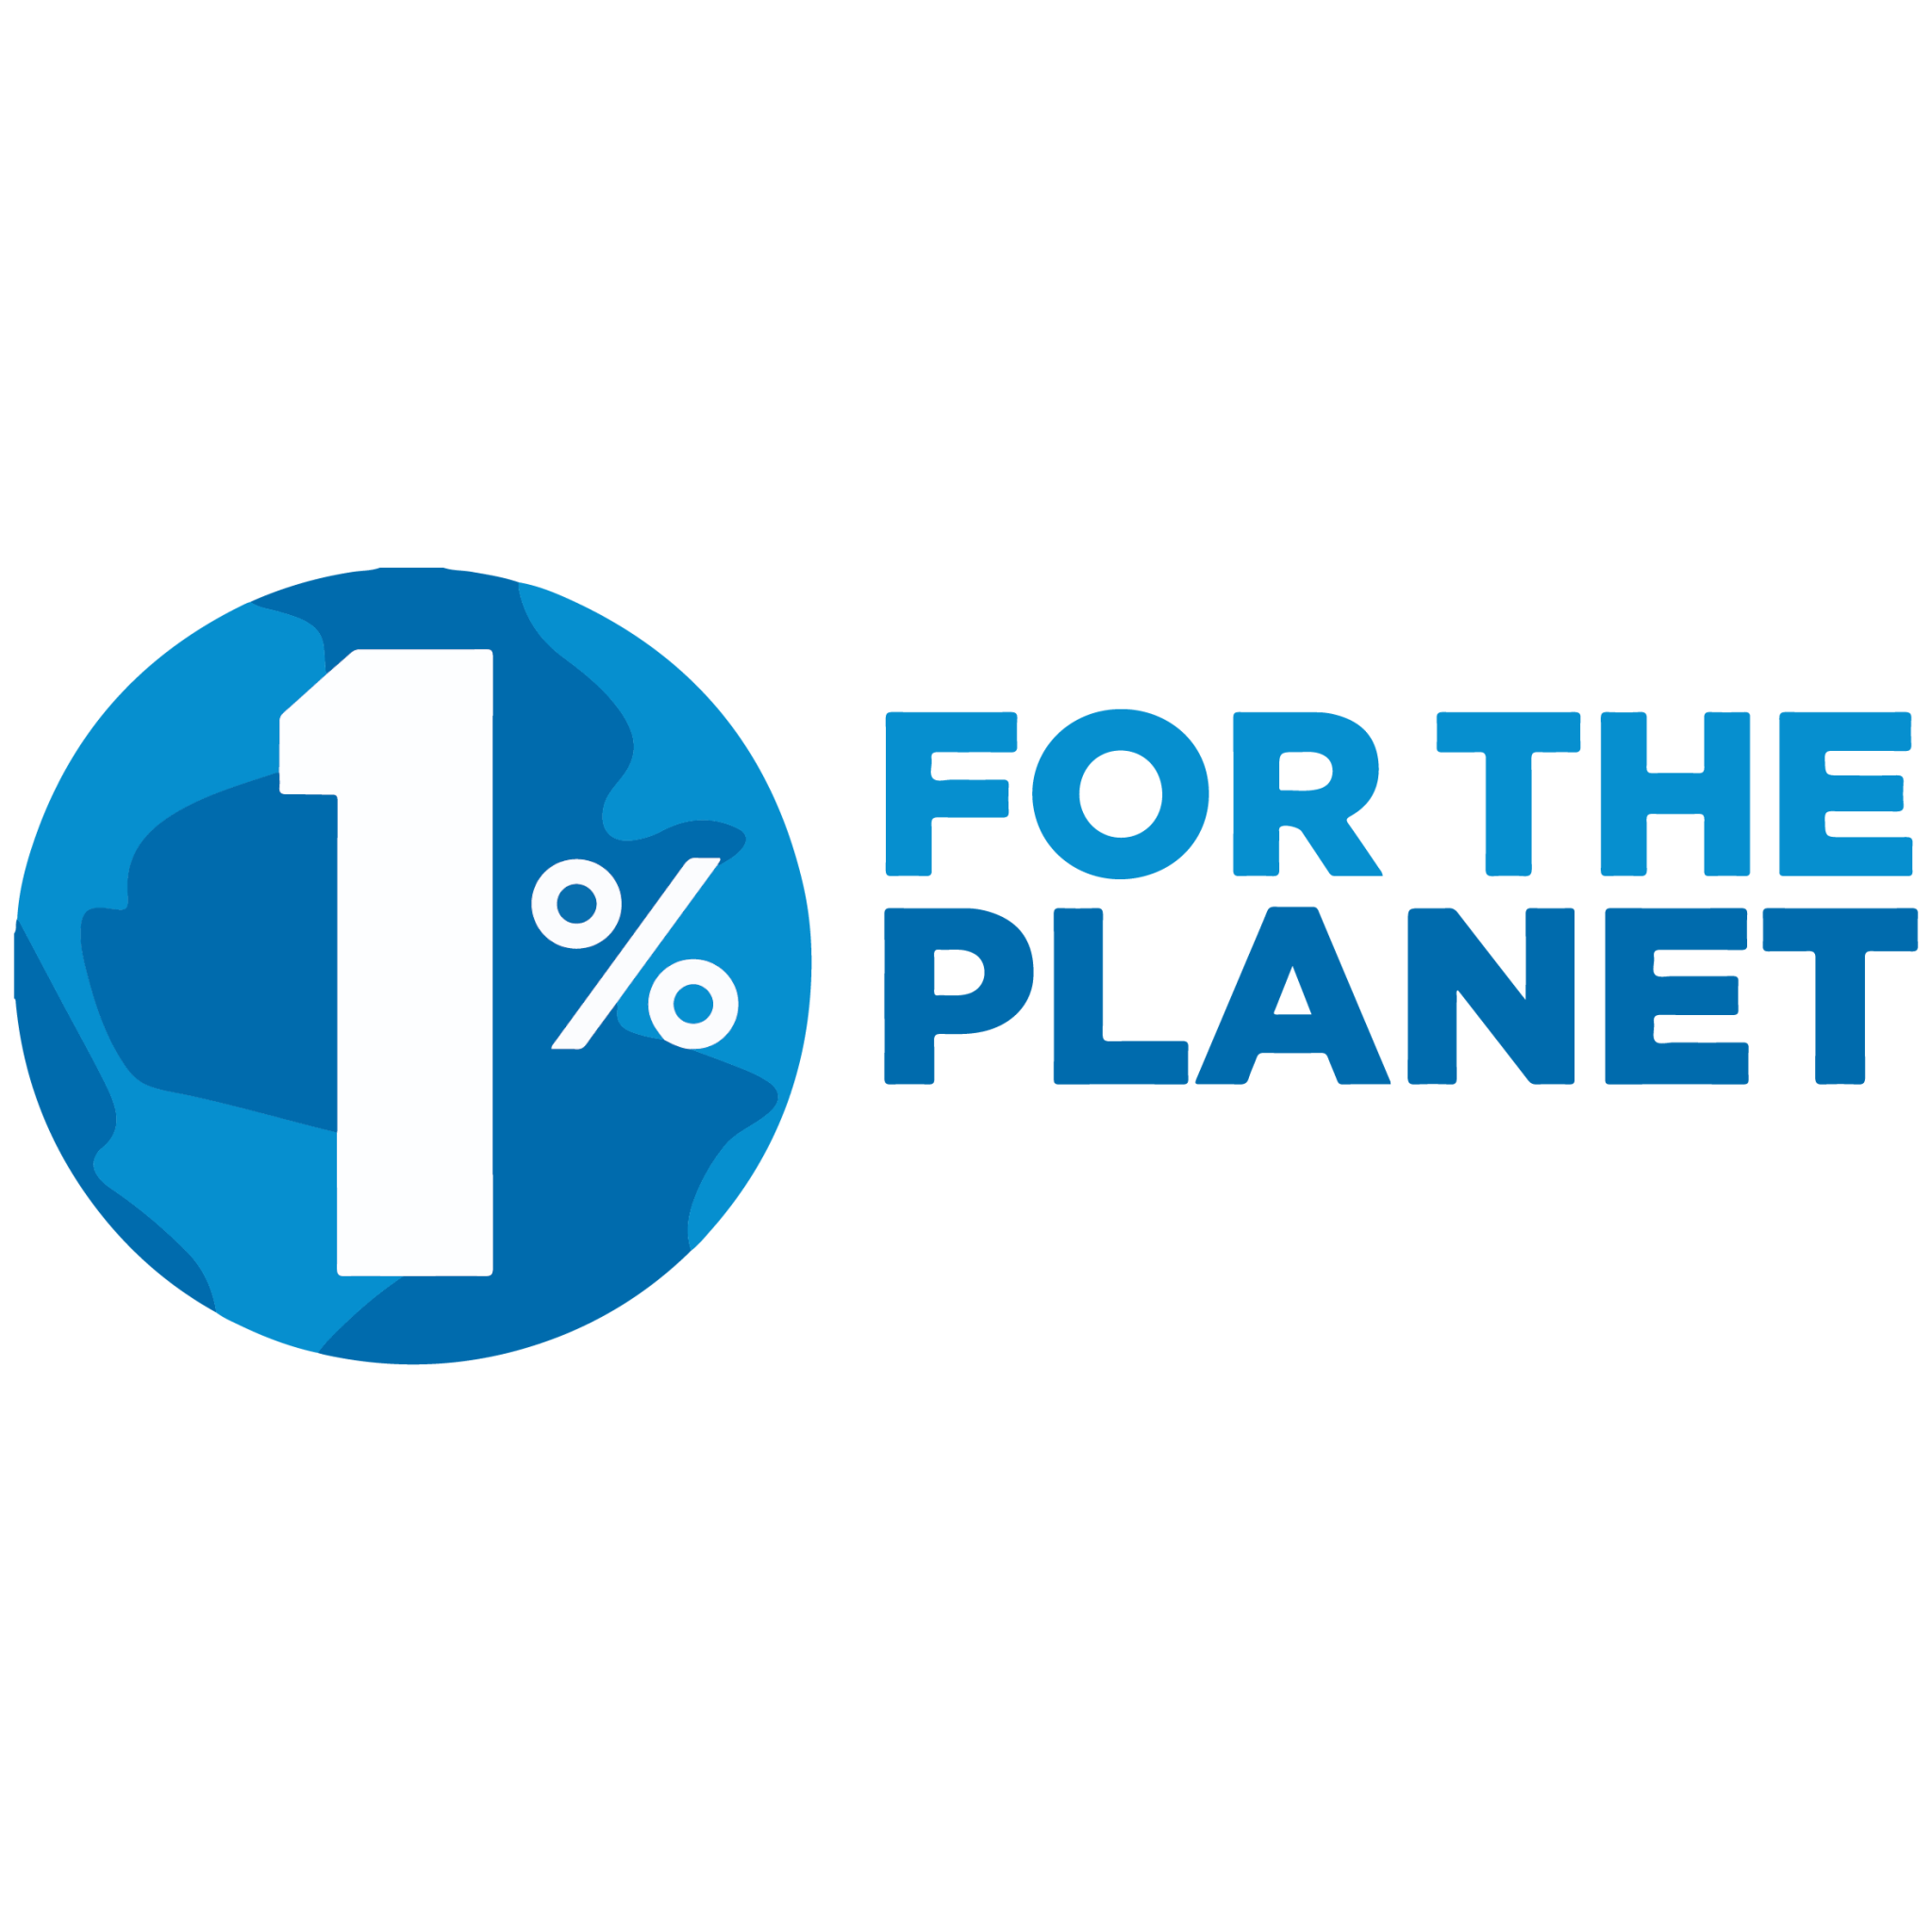 One Percent for the Planet - Logo